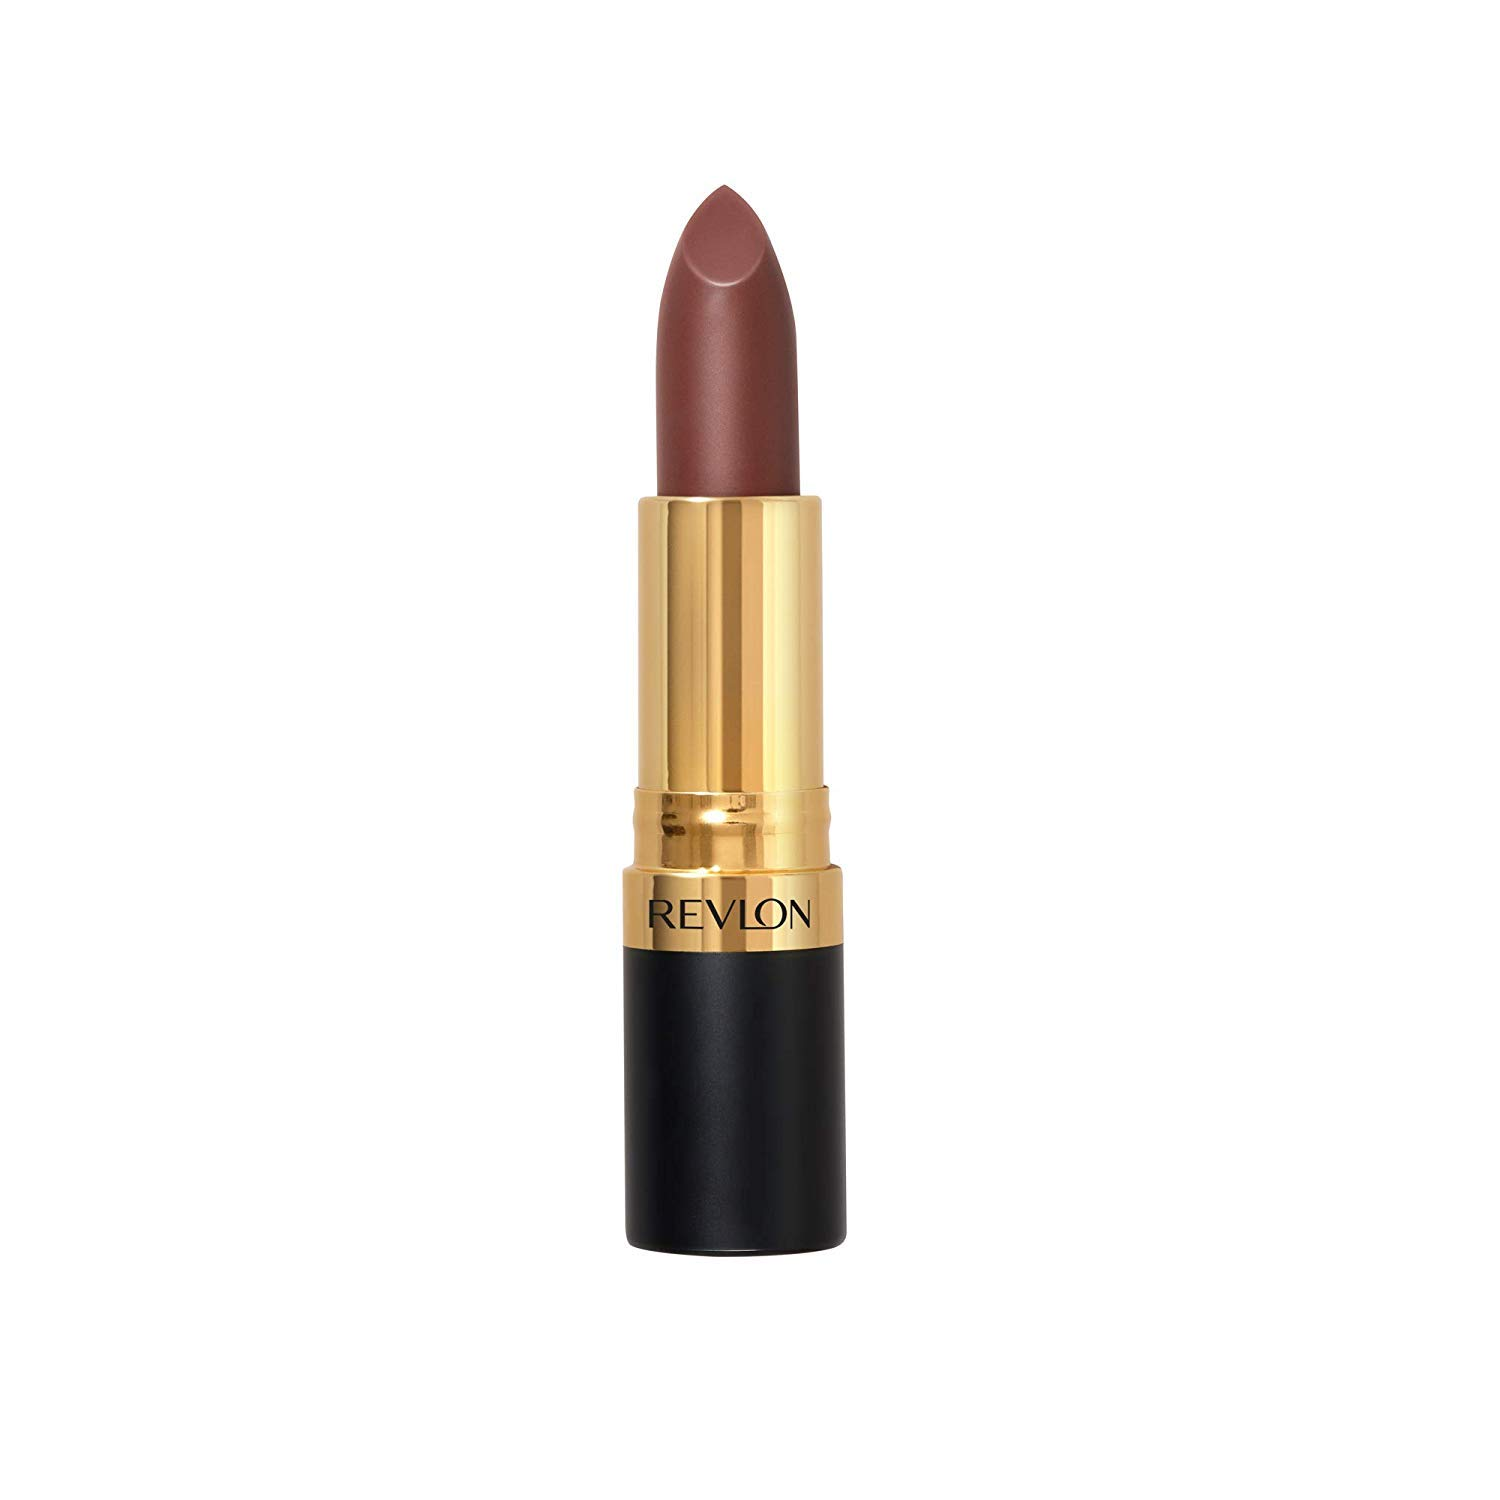 Revlon Super Lustrous Lipstick, Dark Night Queen, Matte Finish